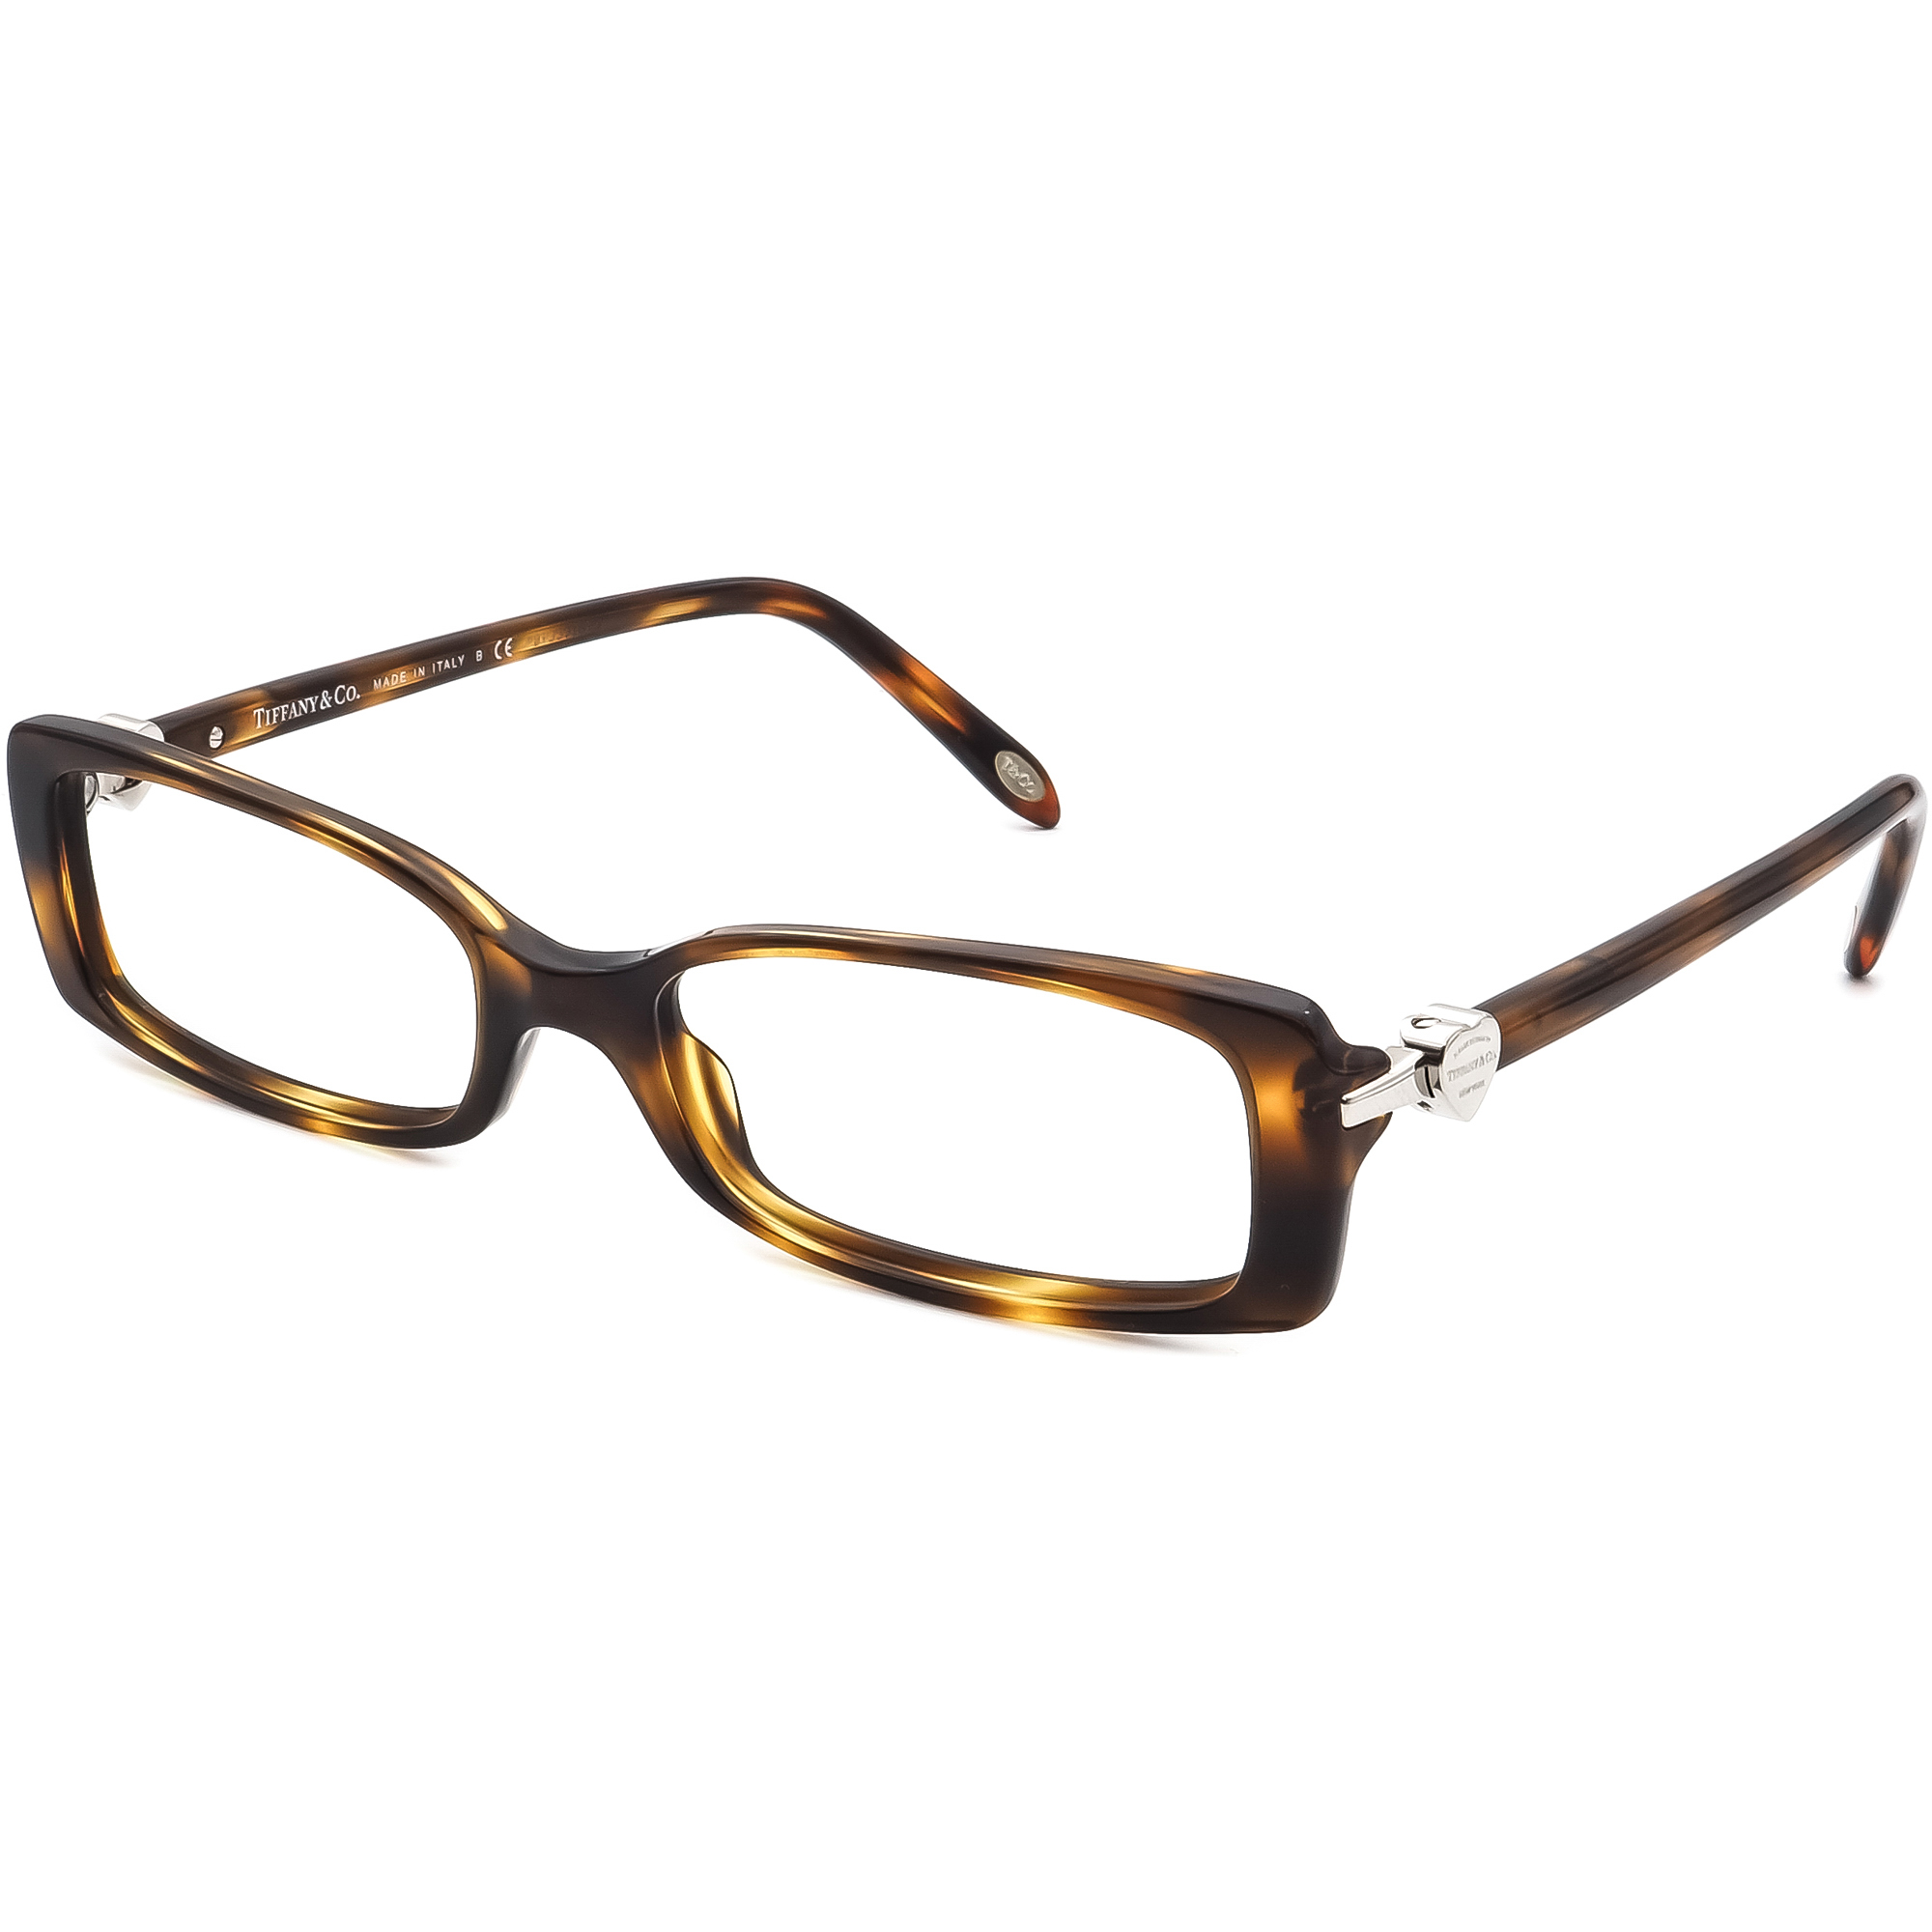 Tiffany & Co. TF 2035 8107 Eyeglasses